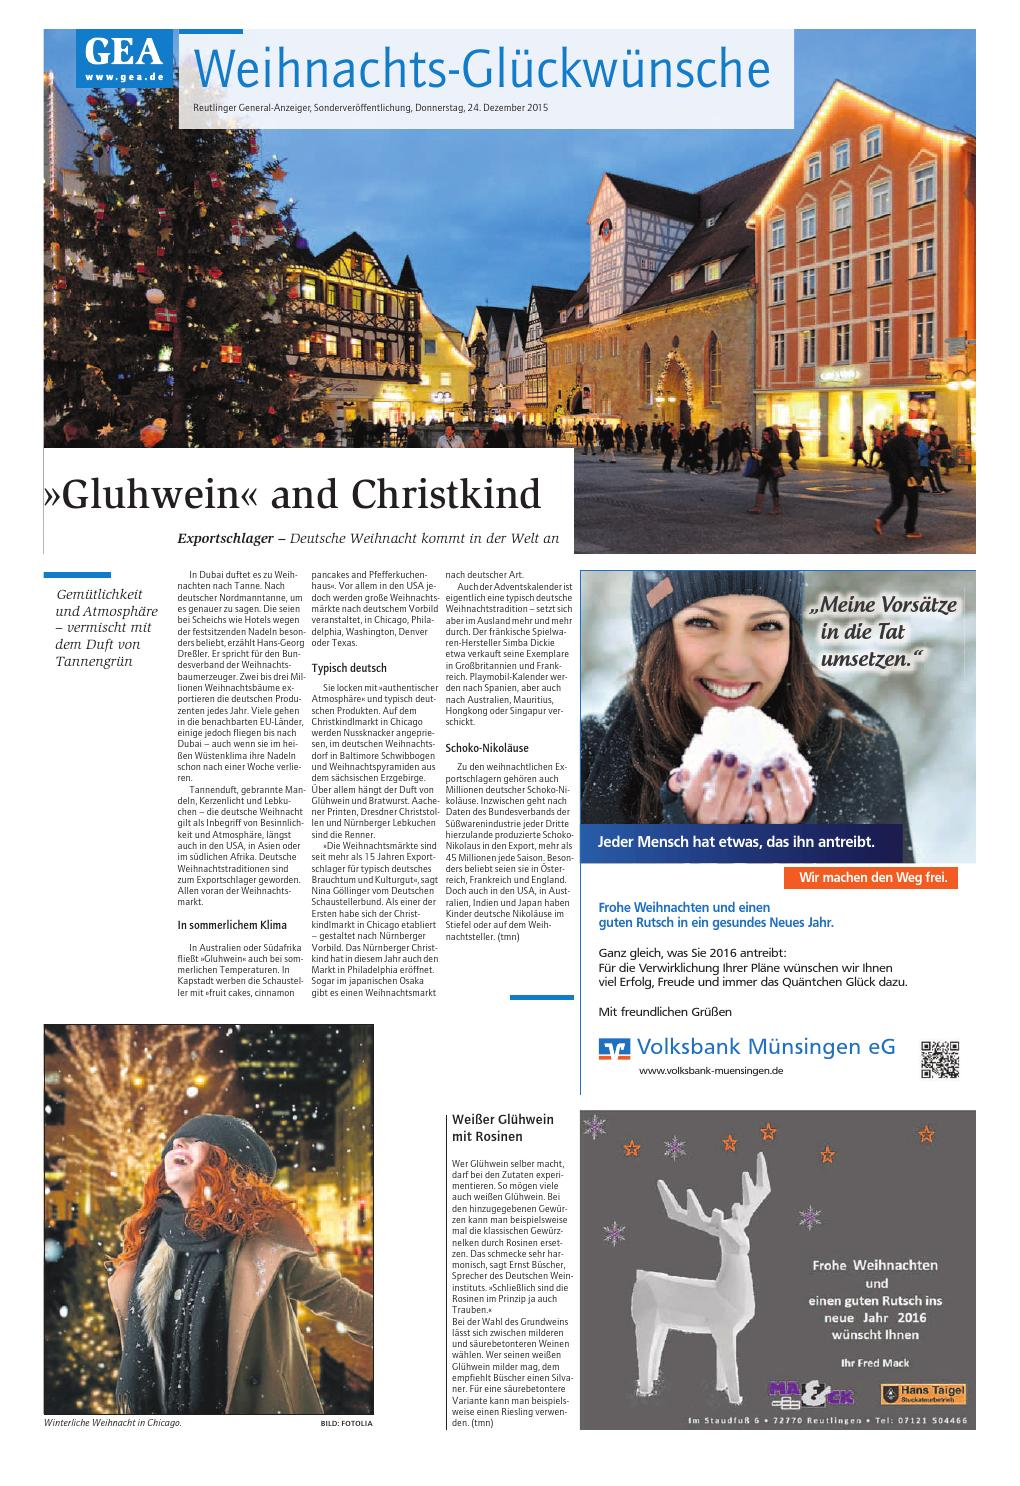 Reutlinger General-Anzeiger (Weihnachtsausgabe 2015) by GEA Publishing und  Media Services GmbH   Co. KG - issuu 037e36e928